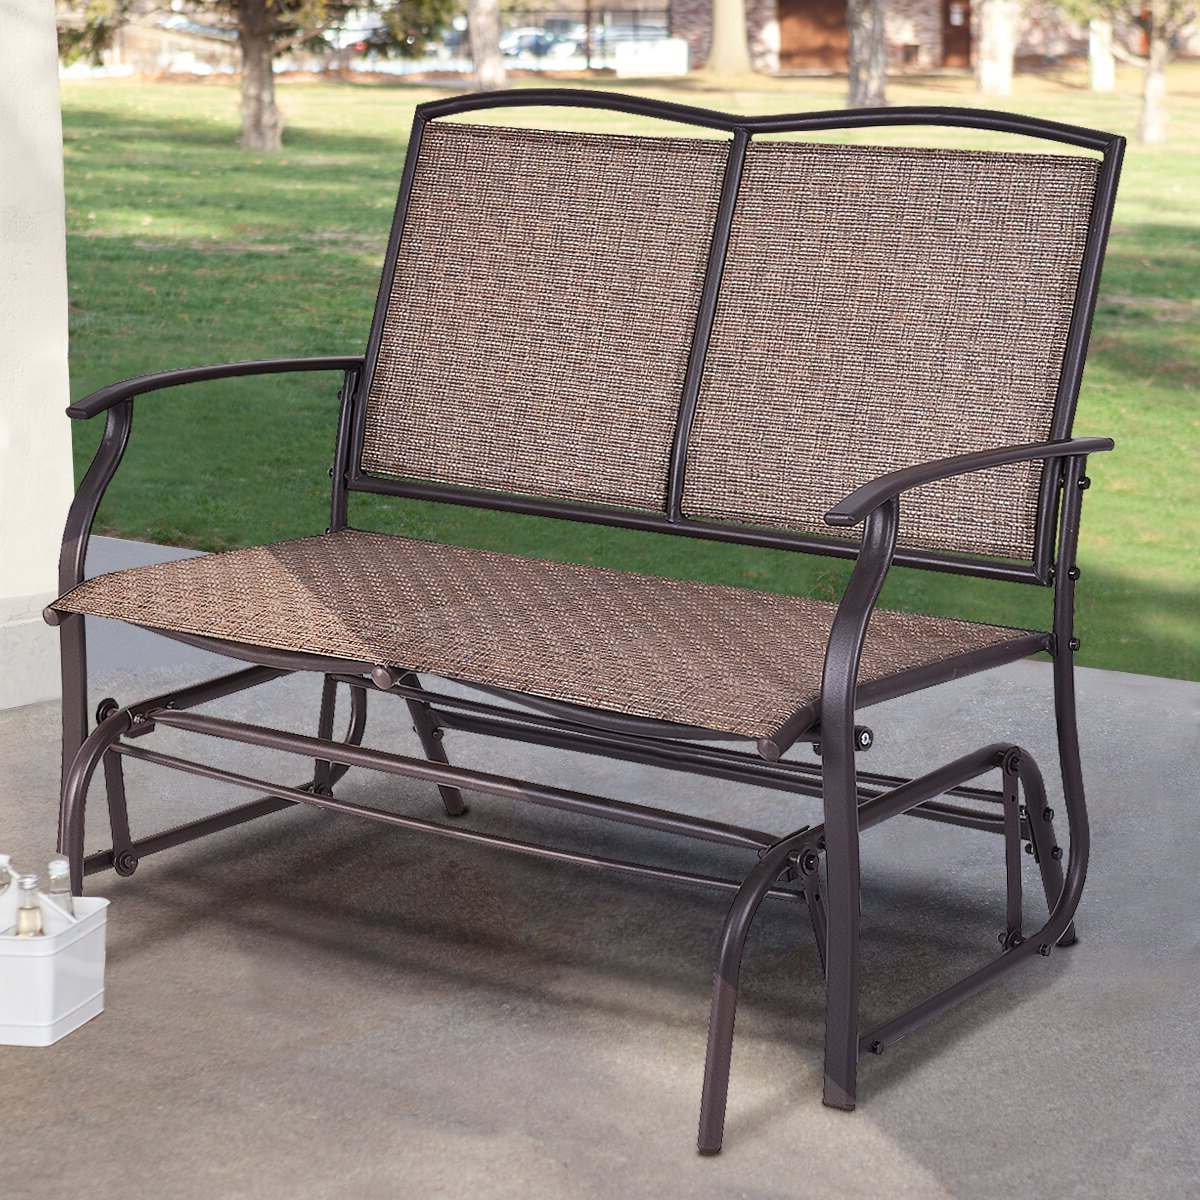 Costway Patio Glider Rocking Bench Double 2 Person Chair Loveseat Armchair  Backyard Within Most Recently Released Twin Seat Glider Benches (View 6 of 31)